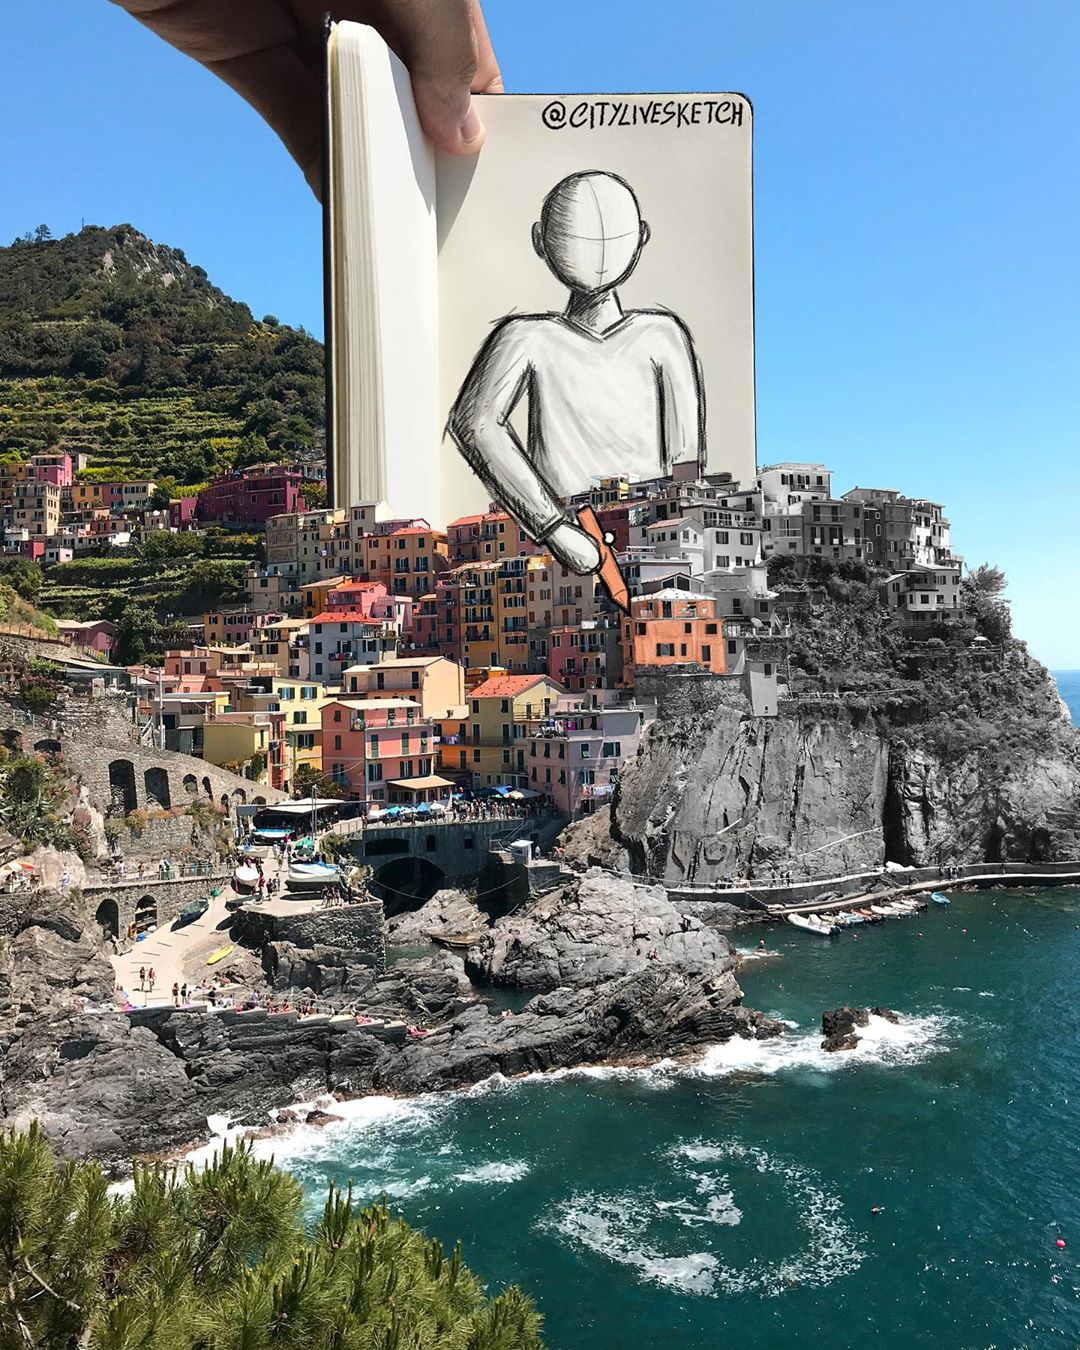 Artist merges photos of real-life structures with playful sketches 13